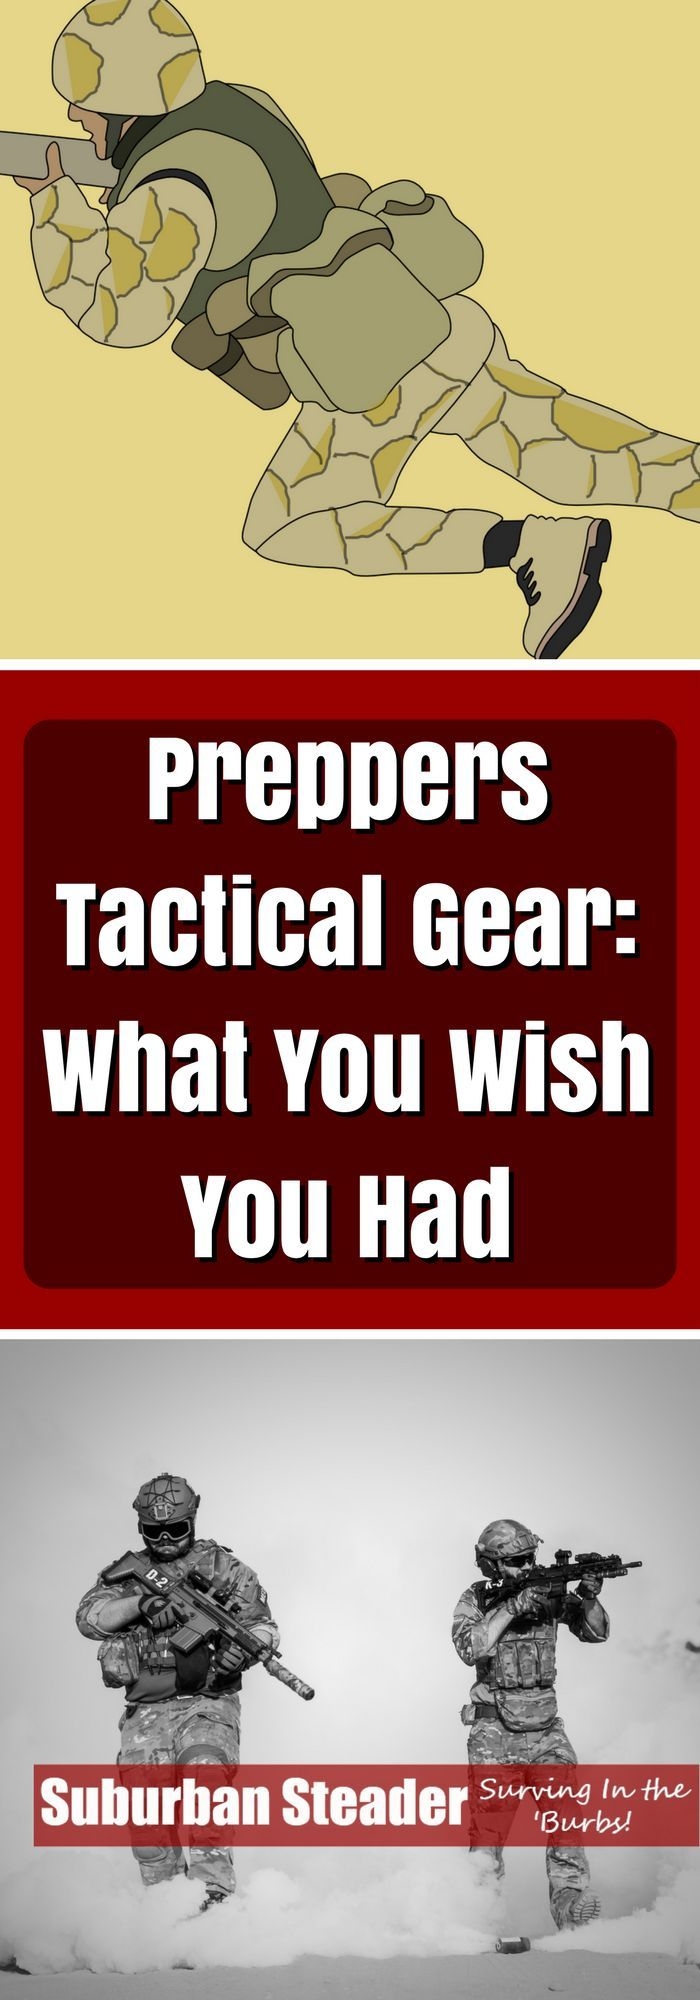 Tactical Gear for Preppers – What You Wish You Had